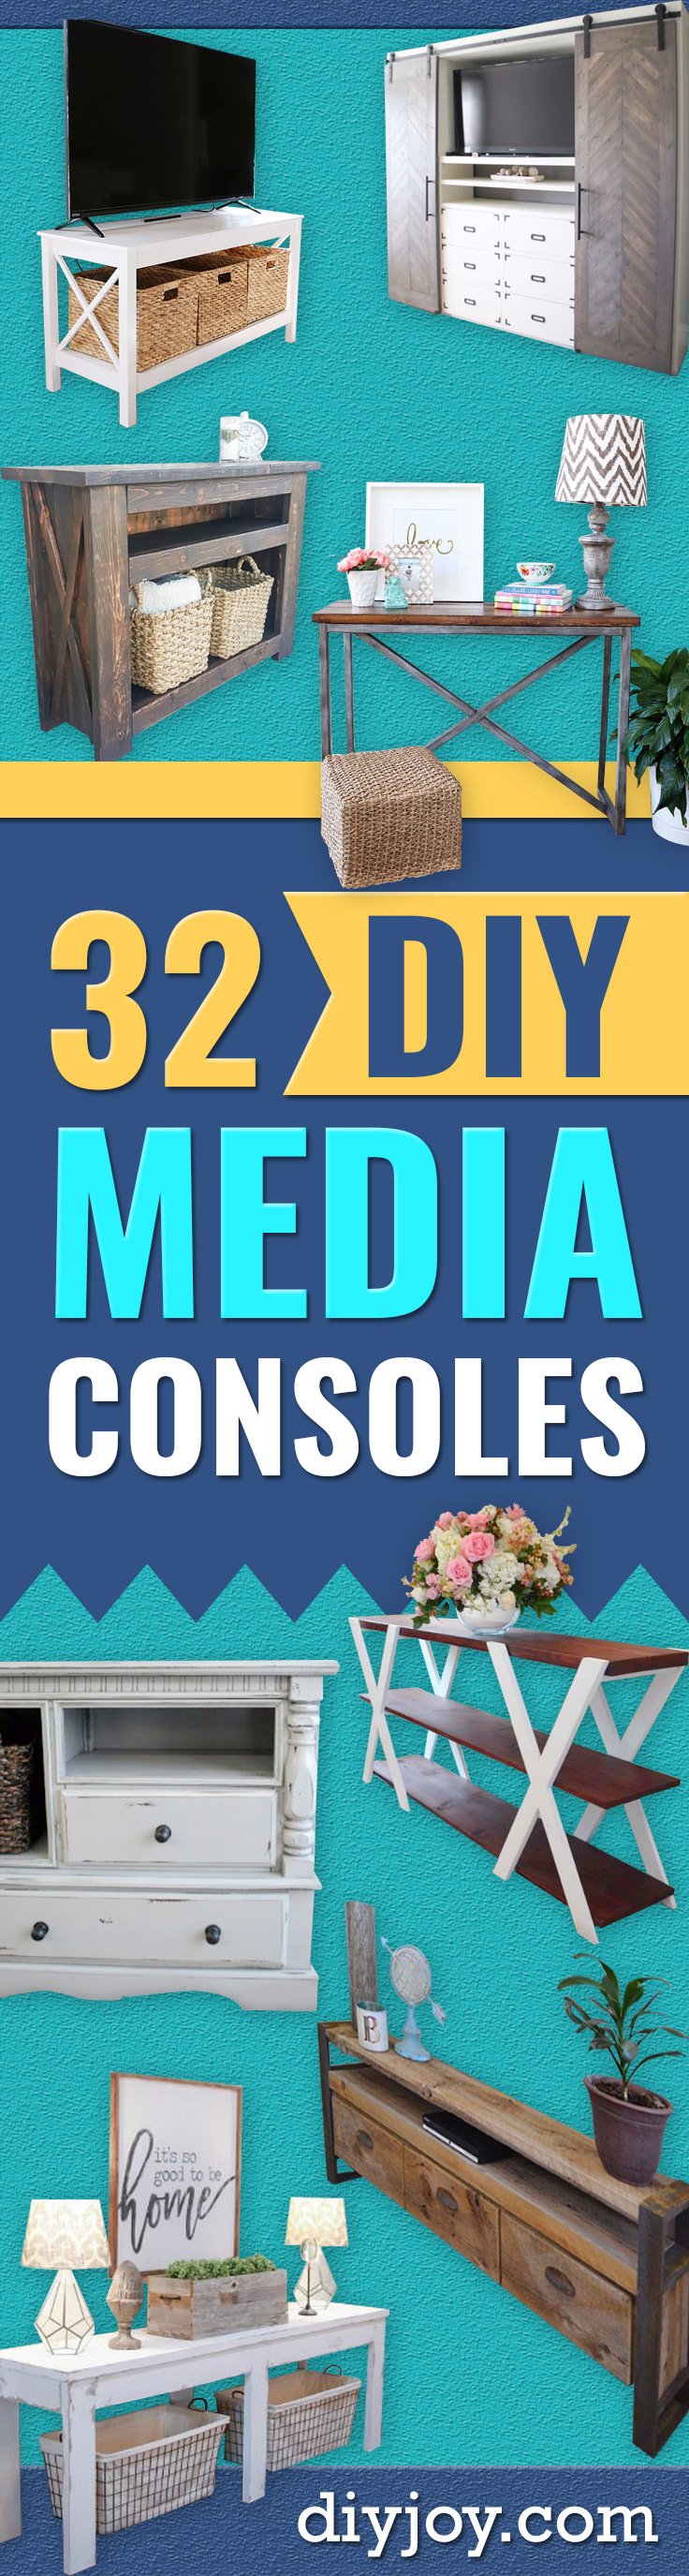 DIY Media Consoles and TV Stands - Make a Do It Yourself Entertainment Center With These Easy Step By Step Tutorials - Easy Farmhouse Decor Media Stand for Television - Free Plans and Instructions for Building and Painting Your Own DIY Furniture - IKEA Hacks for TV Stand Idea - Quick and Easy Ways to Decorate Your Home On A Budget http://diyjoy.com/diy-tv-media-consoles